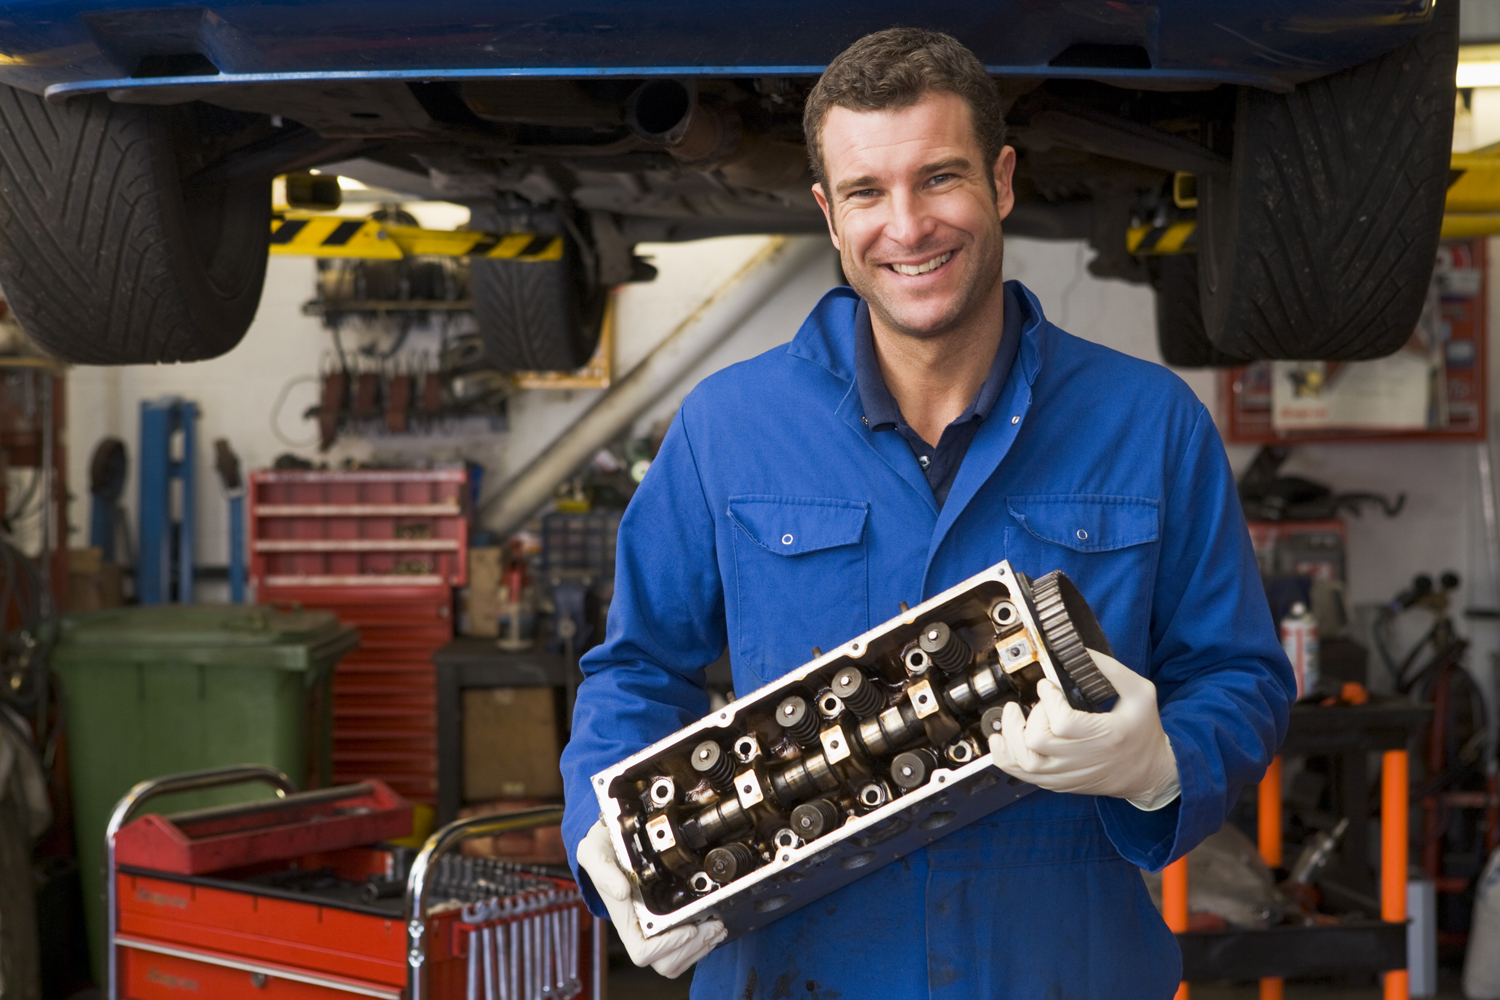 Mechanic holding car part smiling